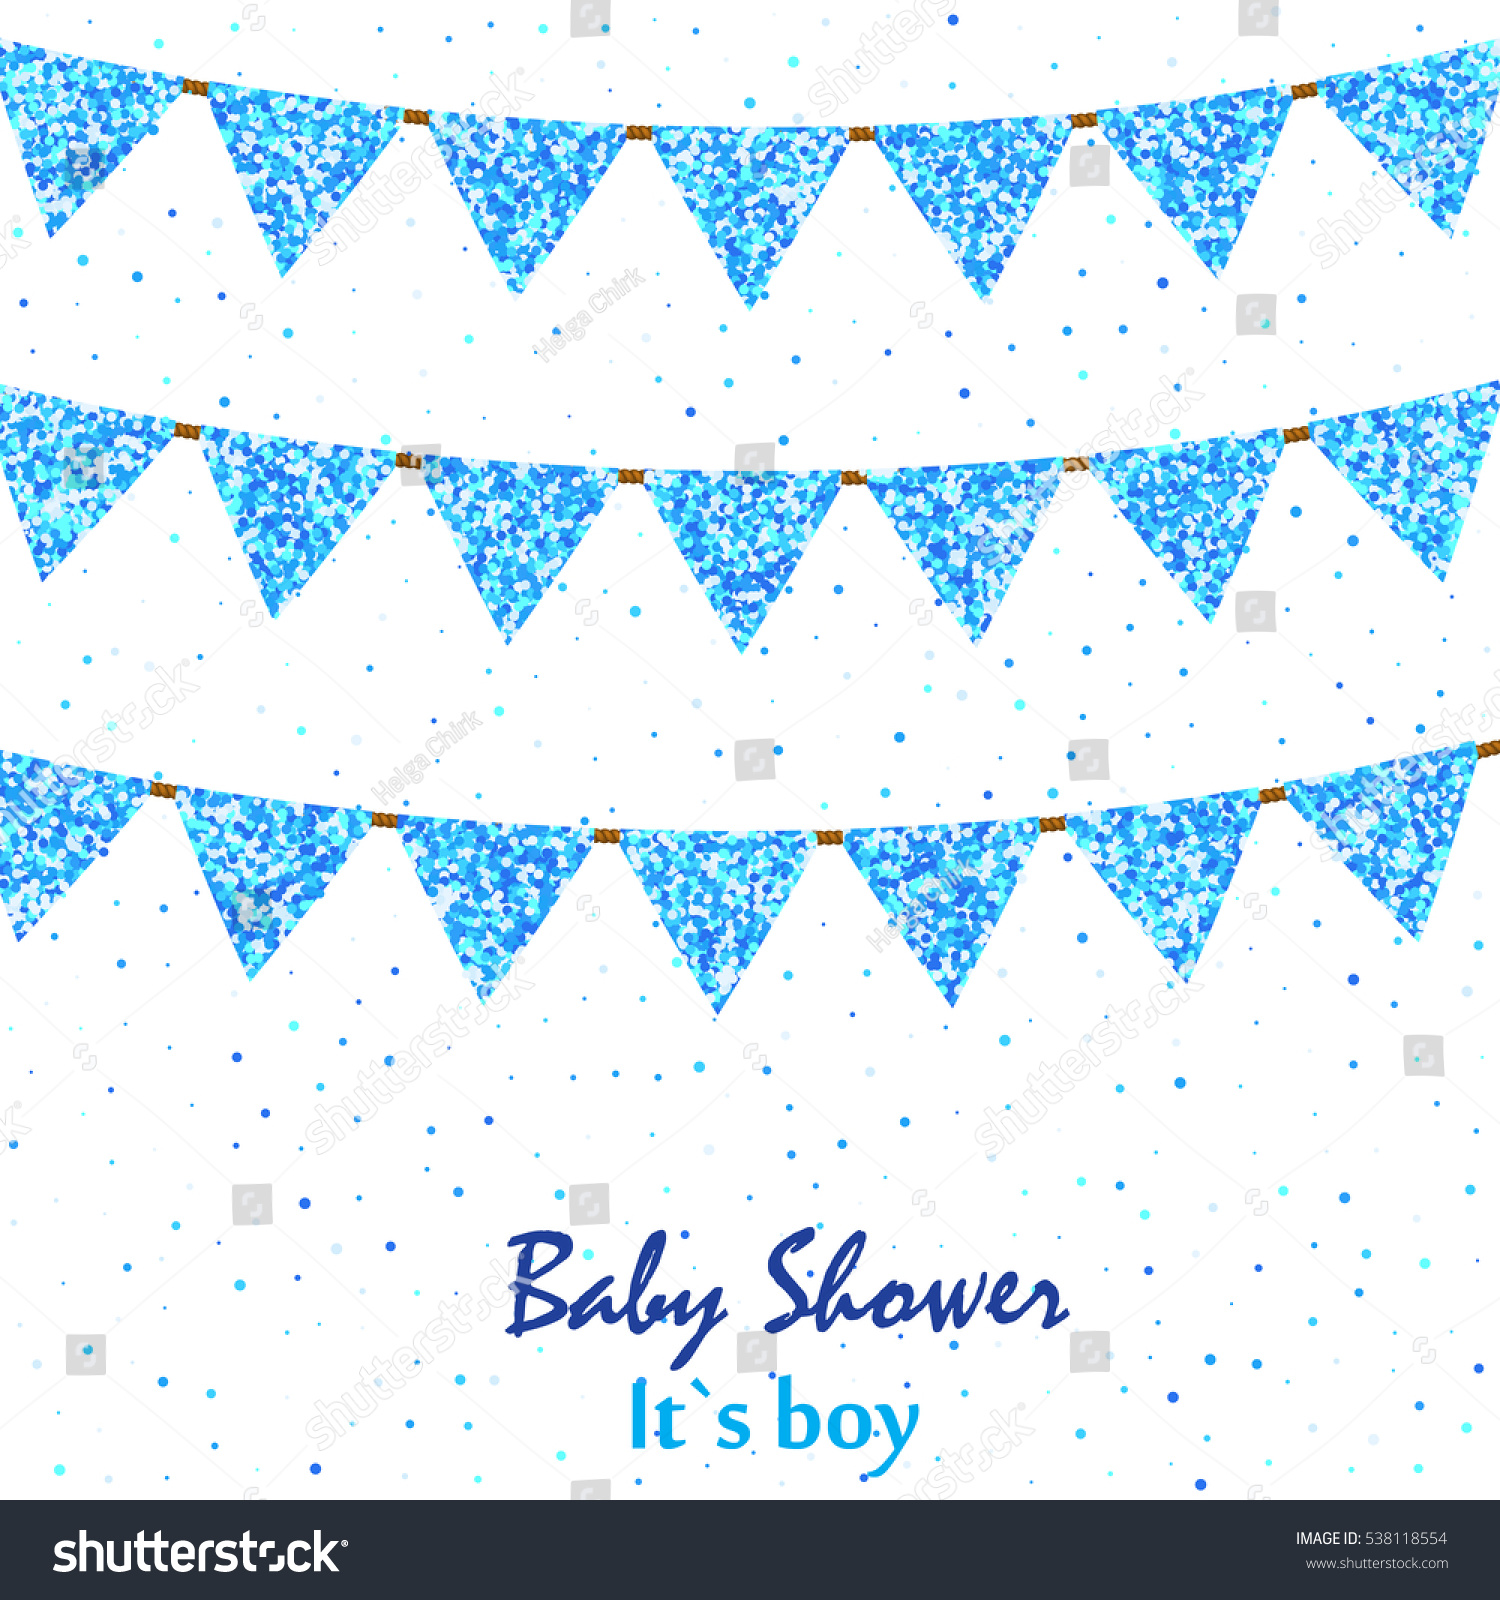 Party Background Flags Can Be Used Stock Vector 538118554 - Shutterstock